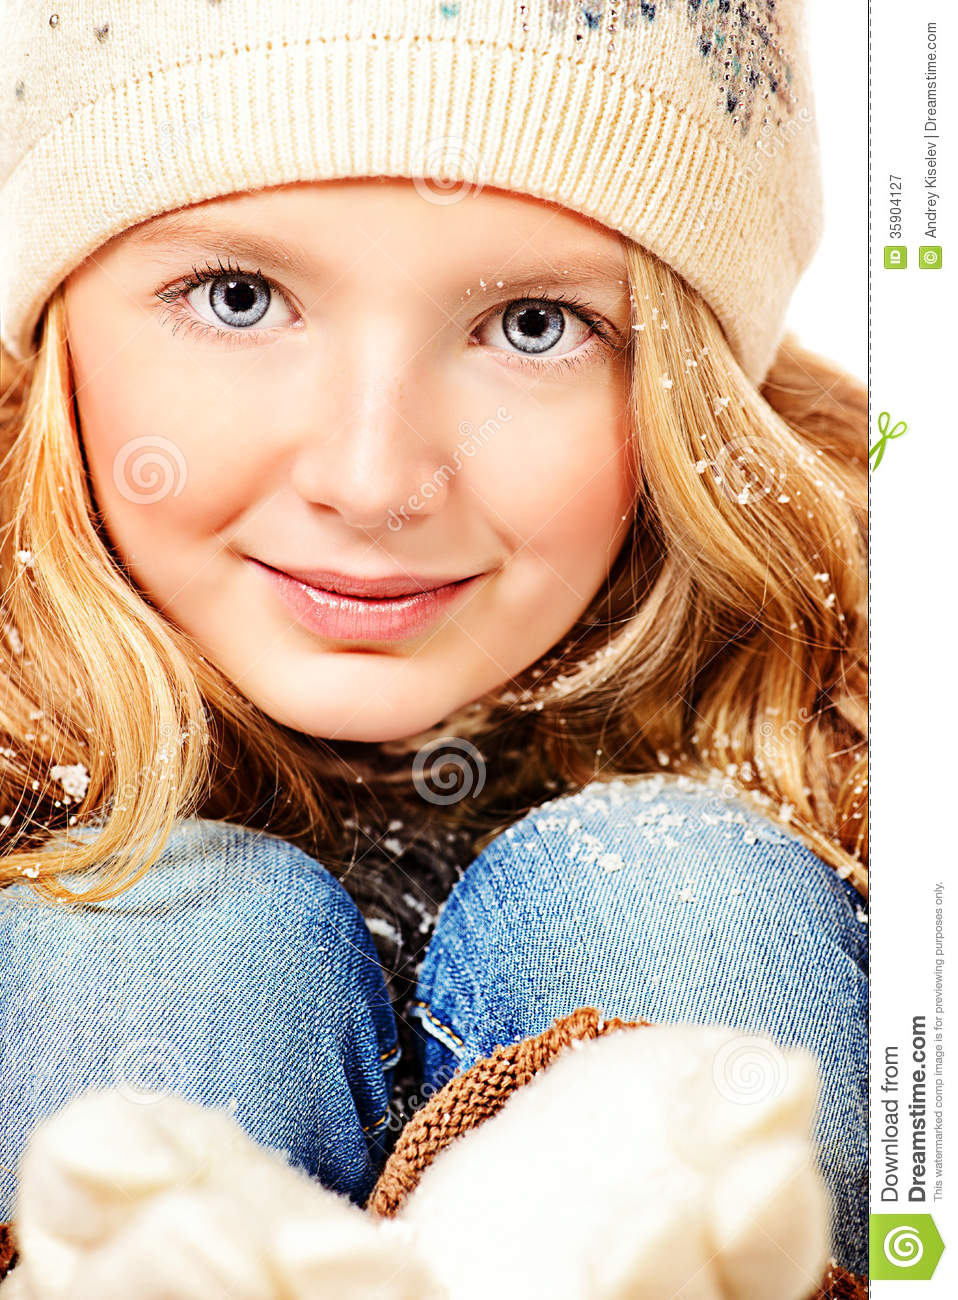 Cute teenager royalty free stock photography image 35904127 for Cute teenager girls